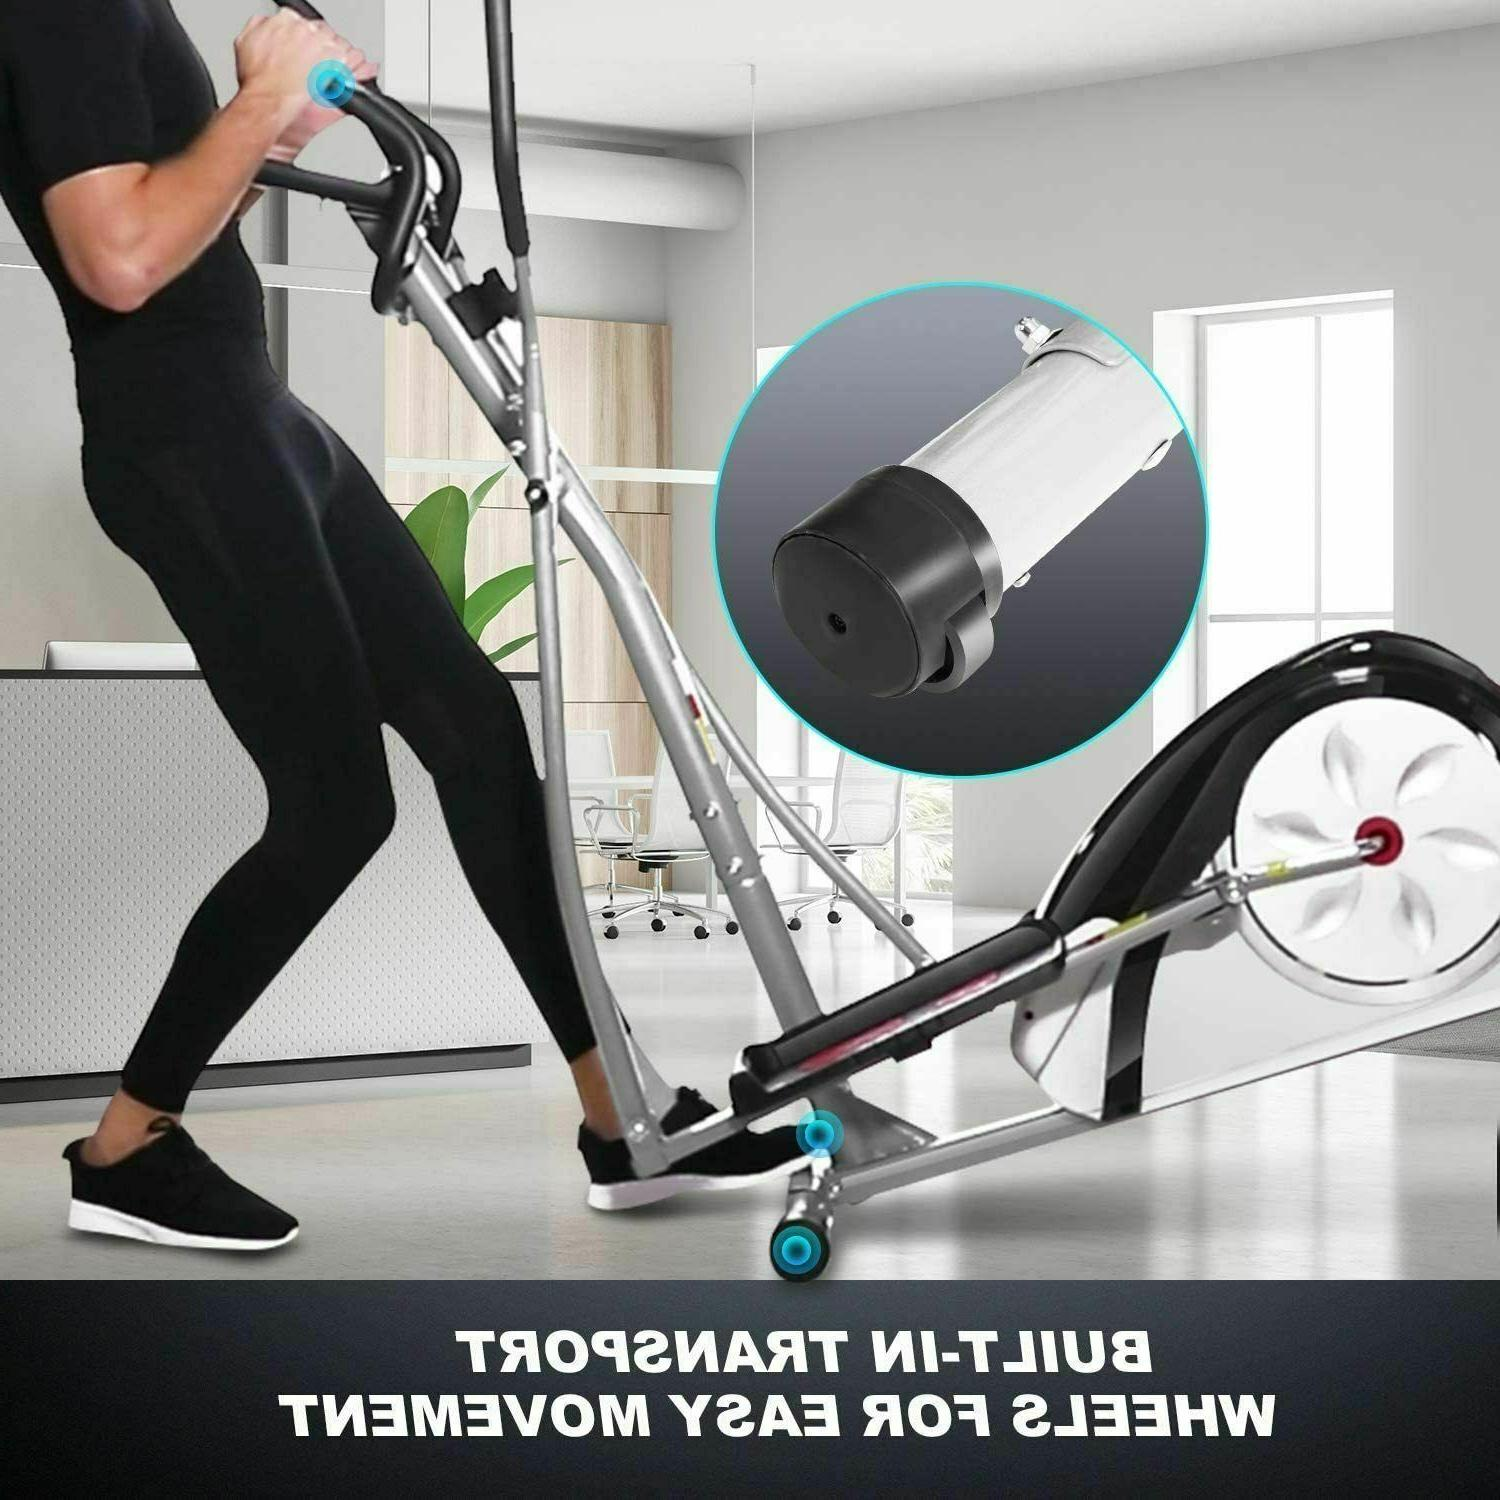 New Machine, 8-Level Resistance Cardio Workout